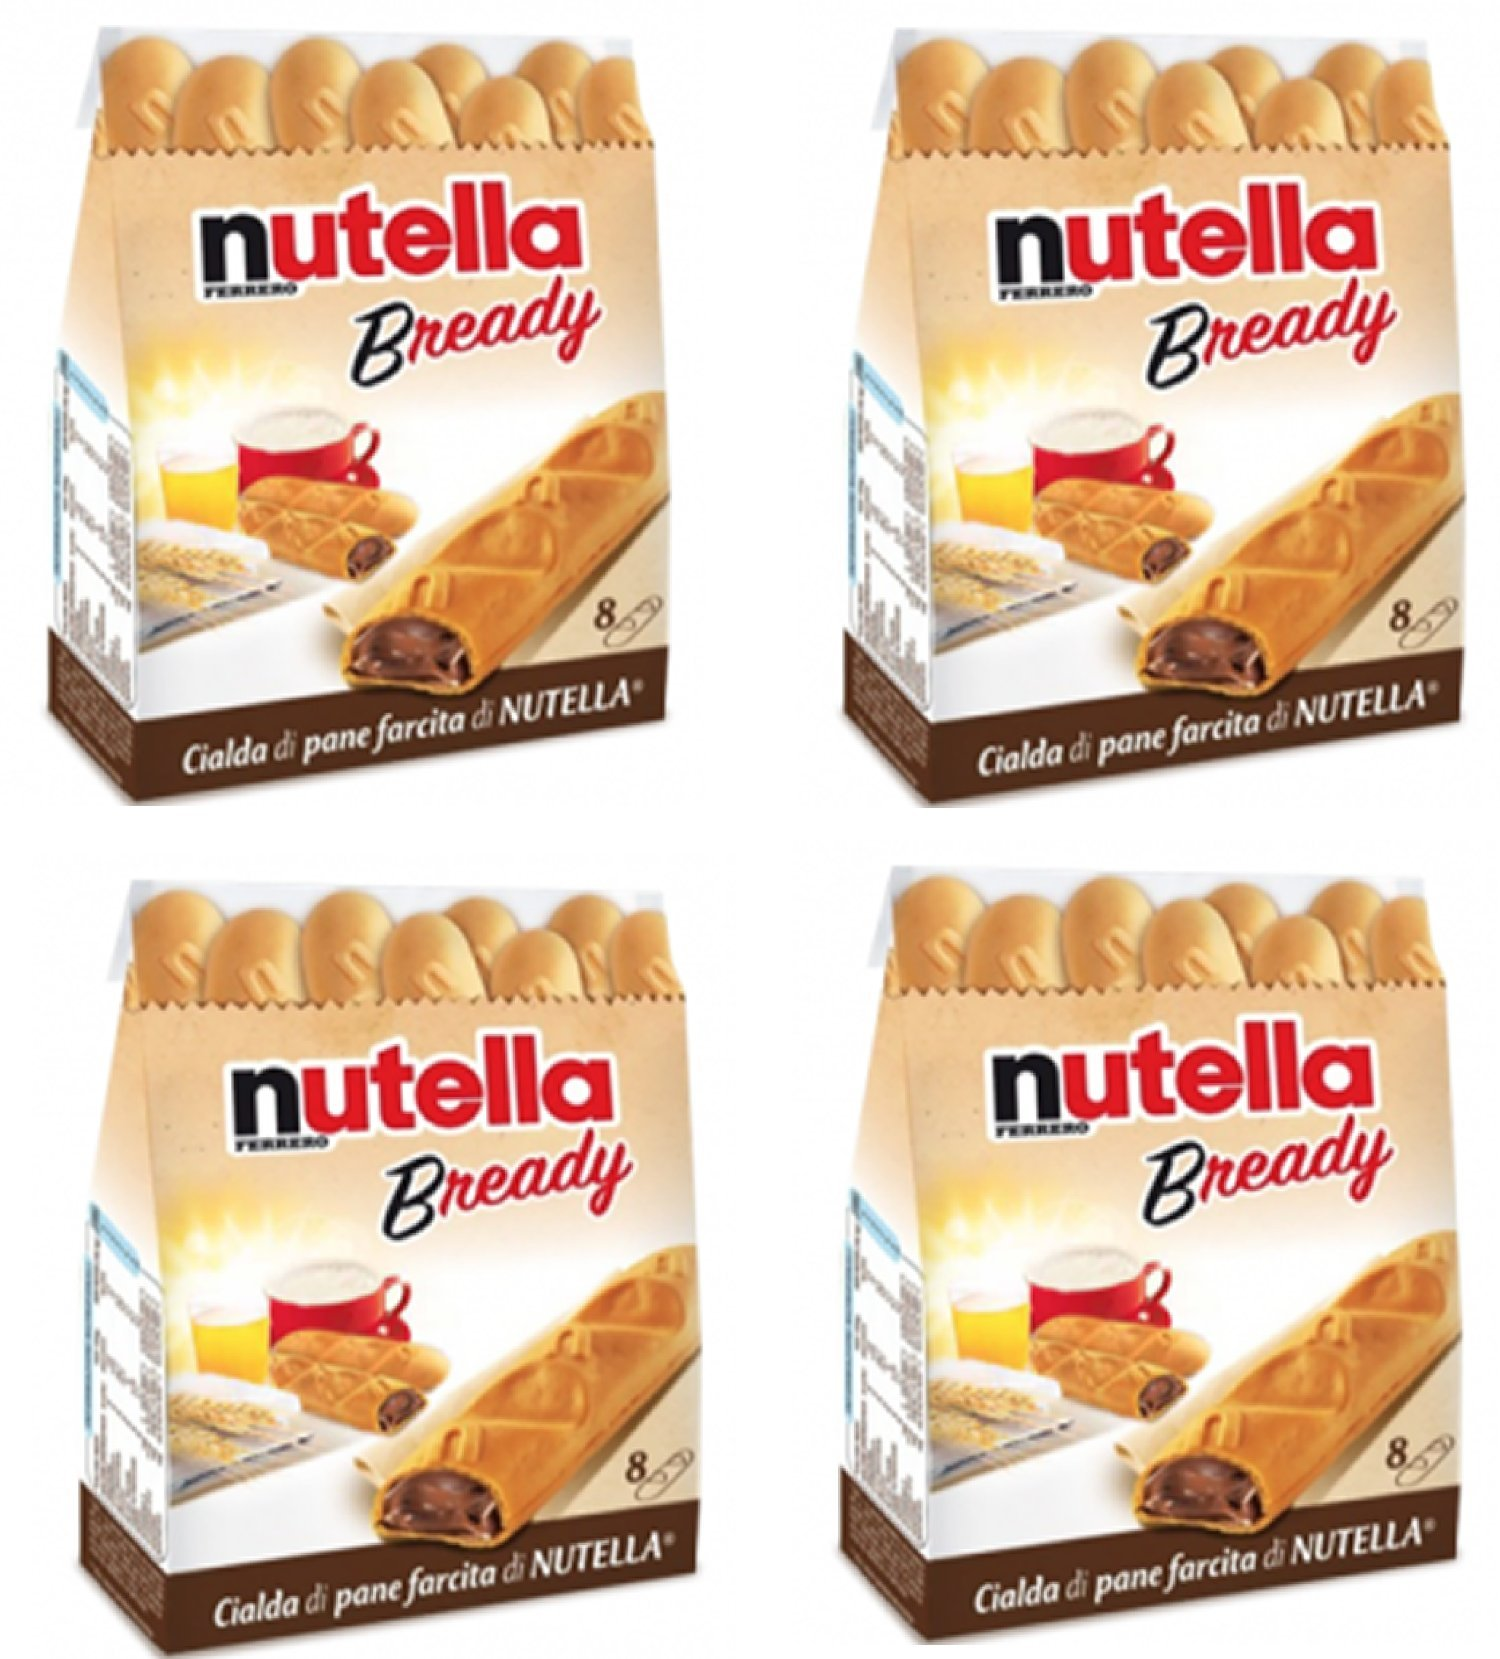 """Ferrero: """"Nutella B-ready """" a crisp wafer of bread in the form of mini - baguette stuffed with a creamy Nutella * 8 pieces * 5.39 oz (153g) * Pack of 4 [ Italian Import ]"""